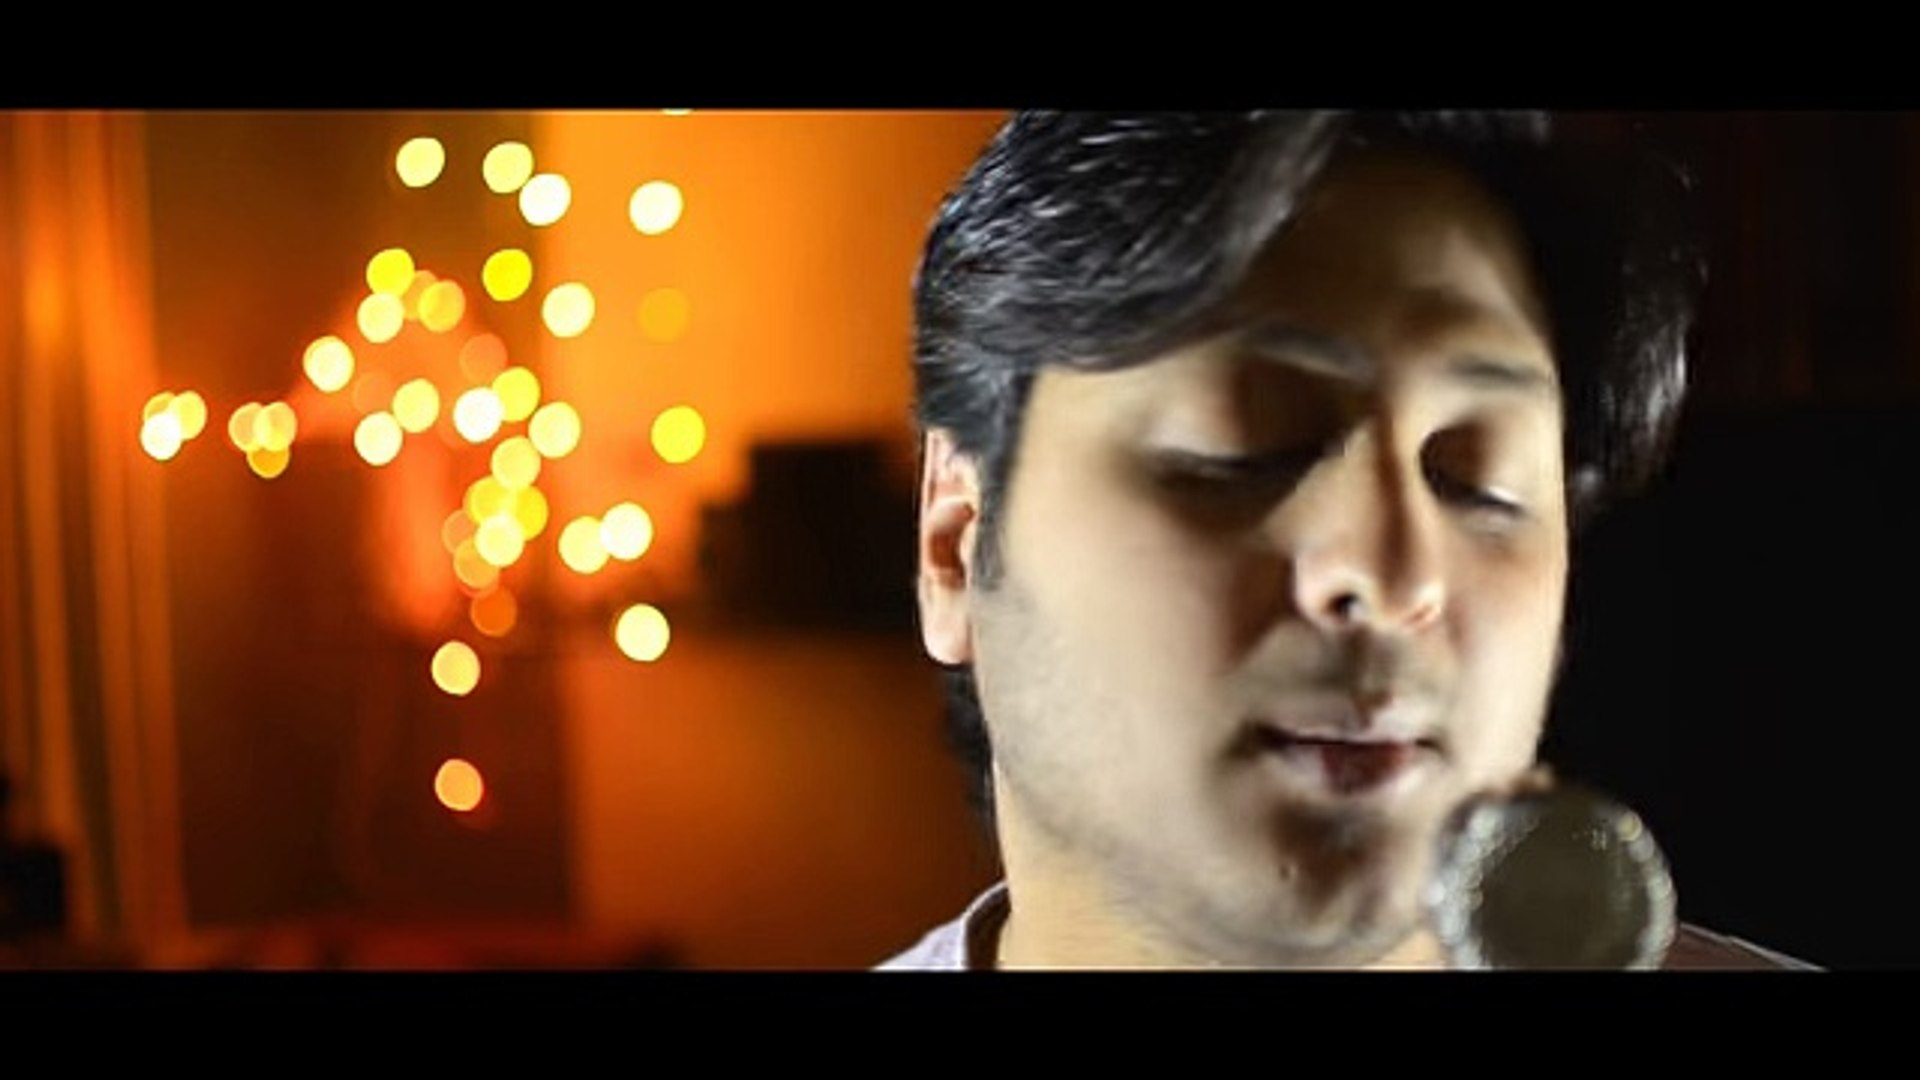 Bolna Kapoor and Sons Arijit Singh Cover By Amit top songs 2016 best songs new songs upcoming songs